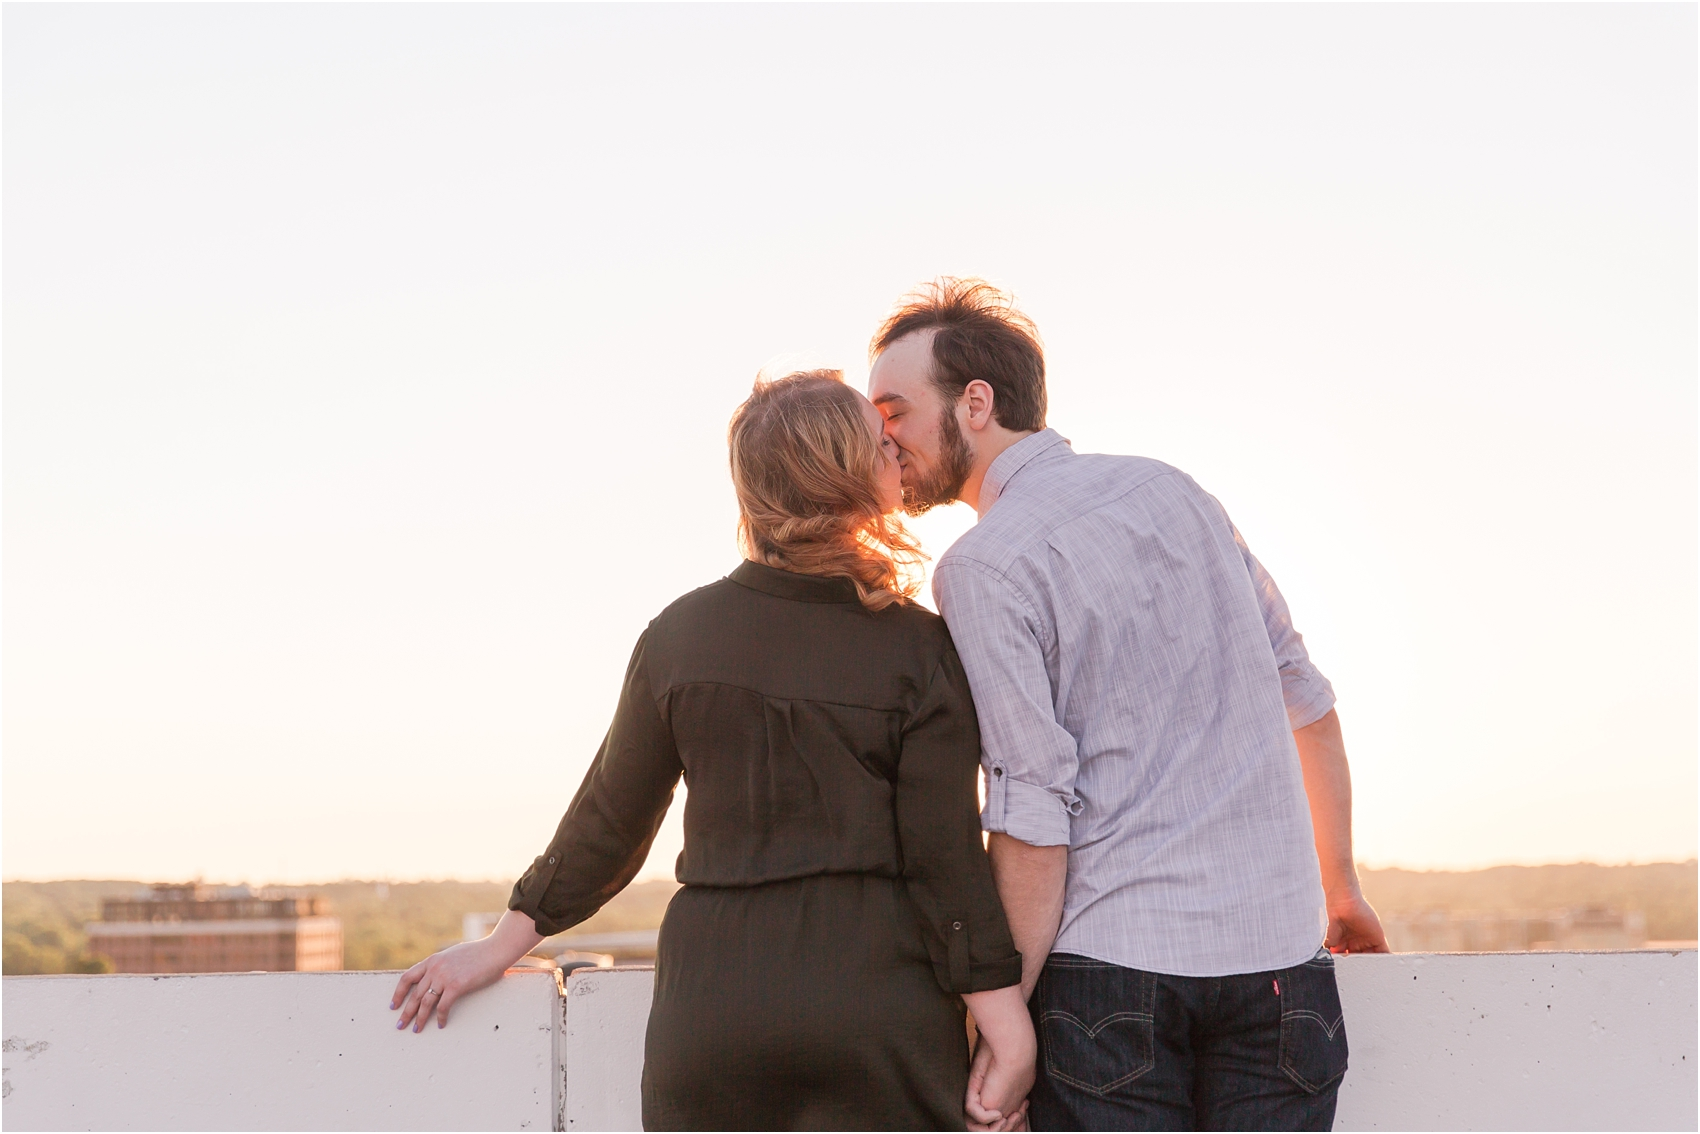 emotional-candid-romantic-engagement-photos-in-detroit-chicago-northern-michigan-by-courtney-carolyn-photography_0058.jpg